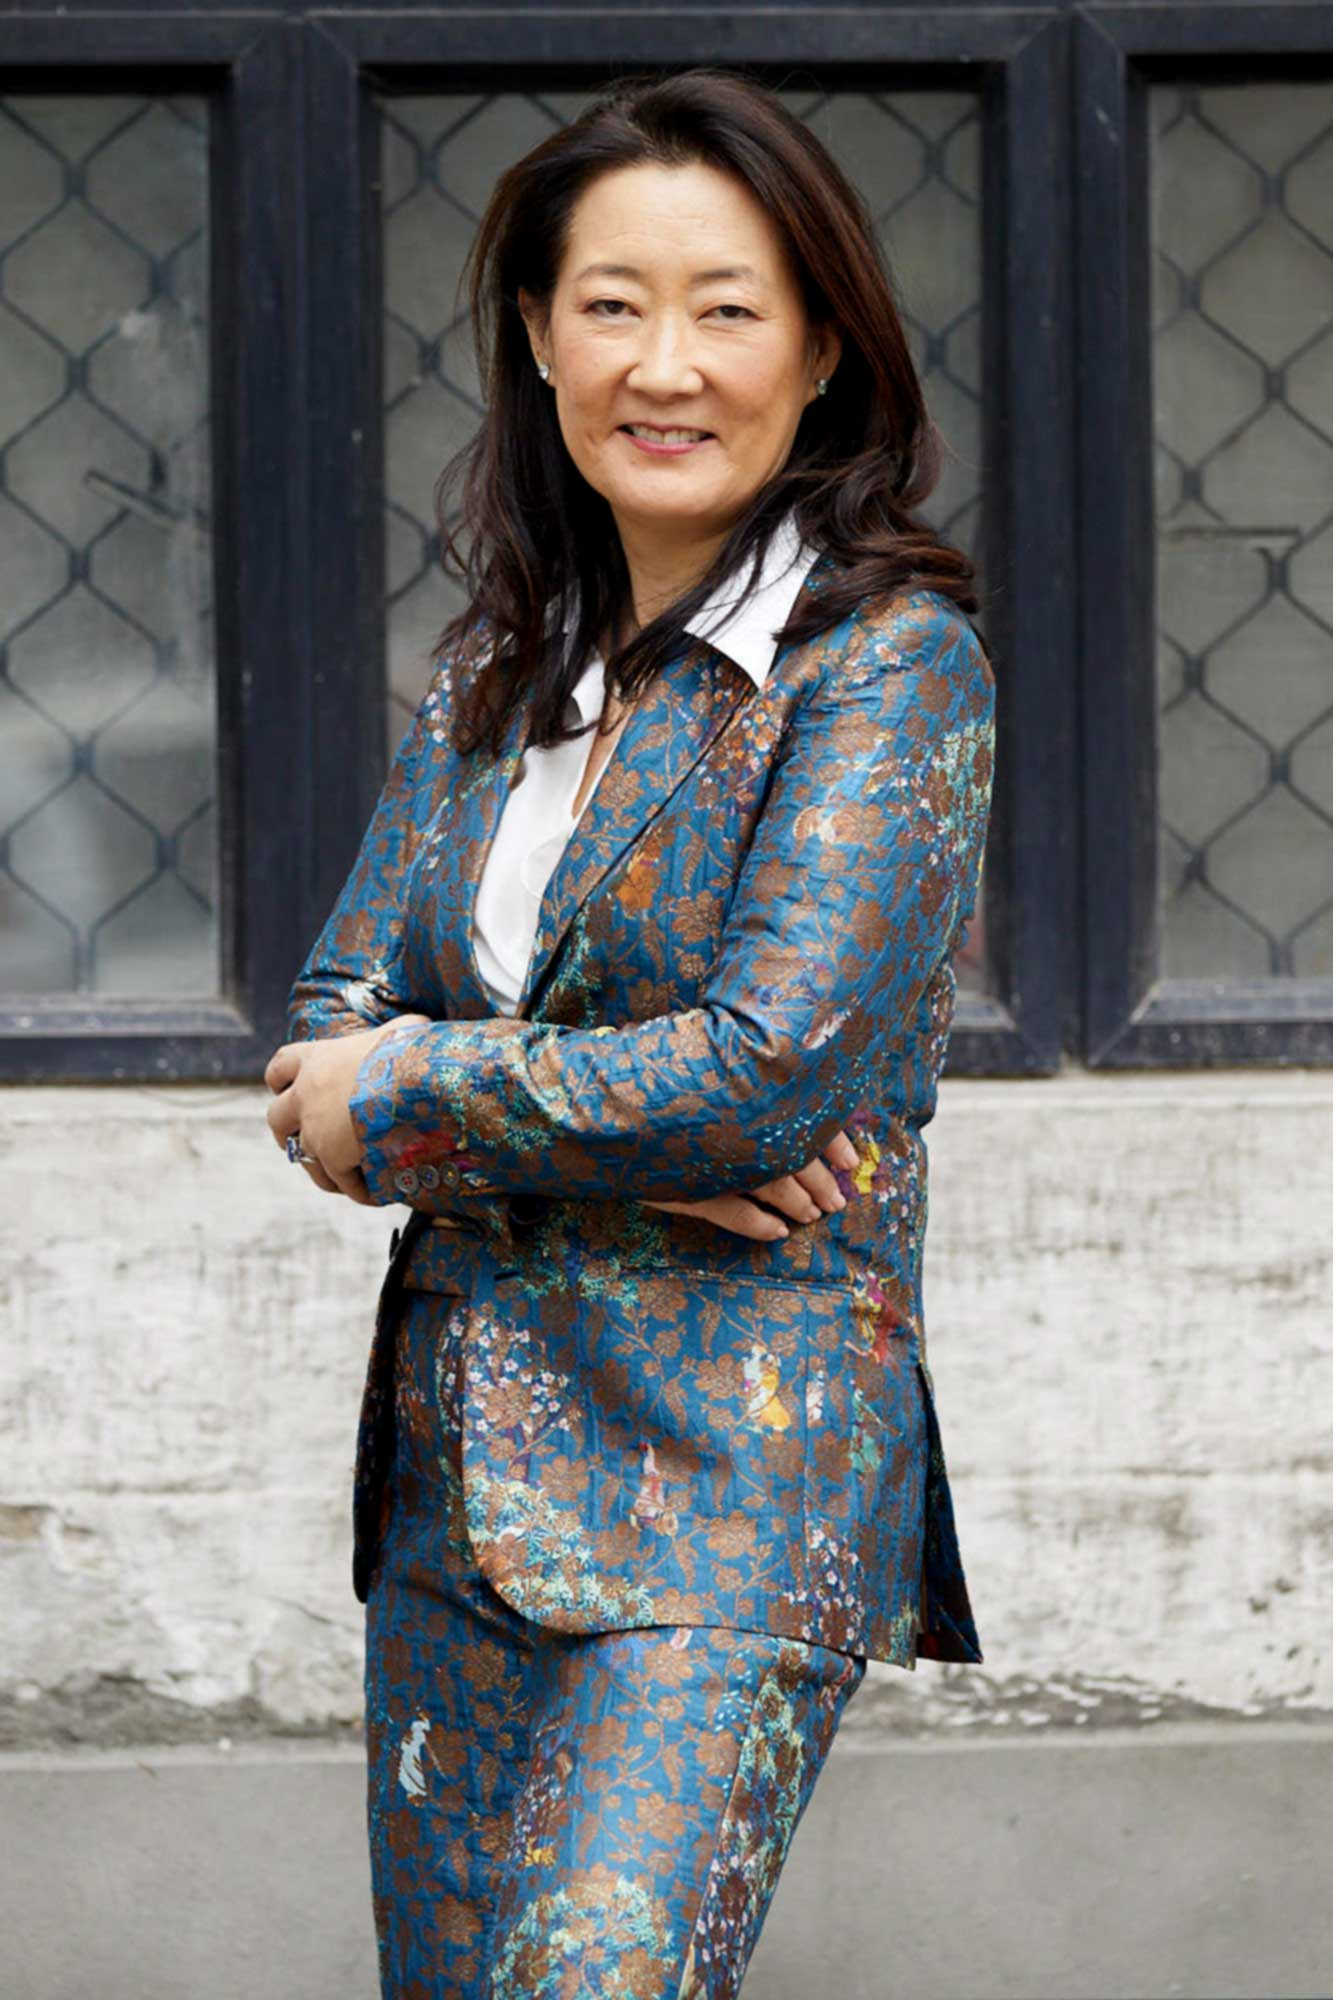 Patricia Dhar in a suit